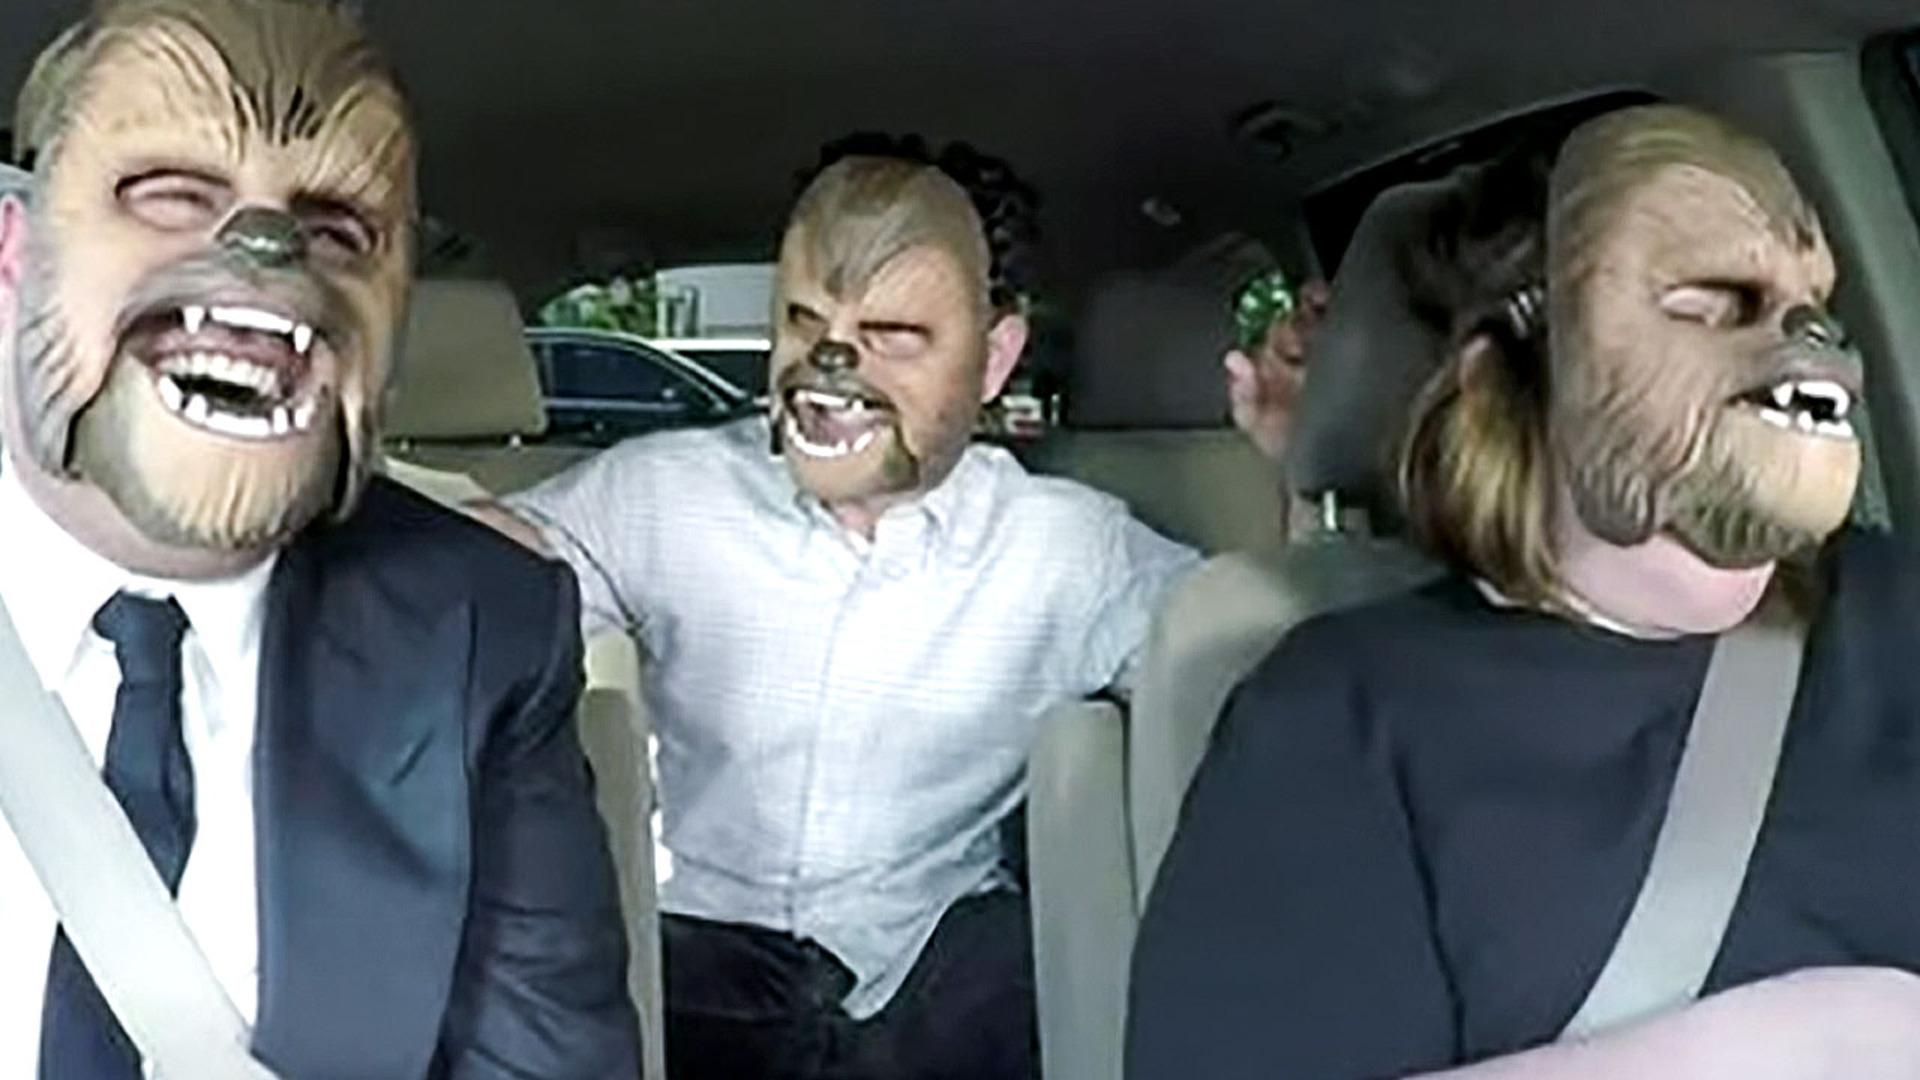 JJ Abrams Surprises Chewbacca Mom with James Corden